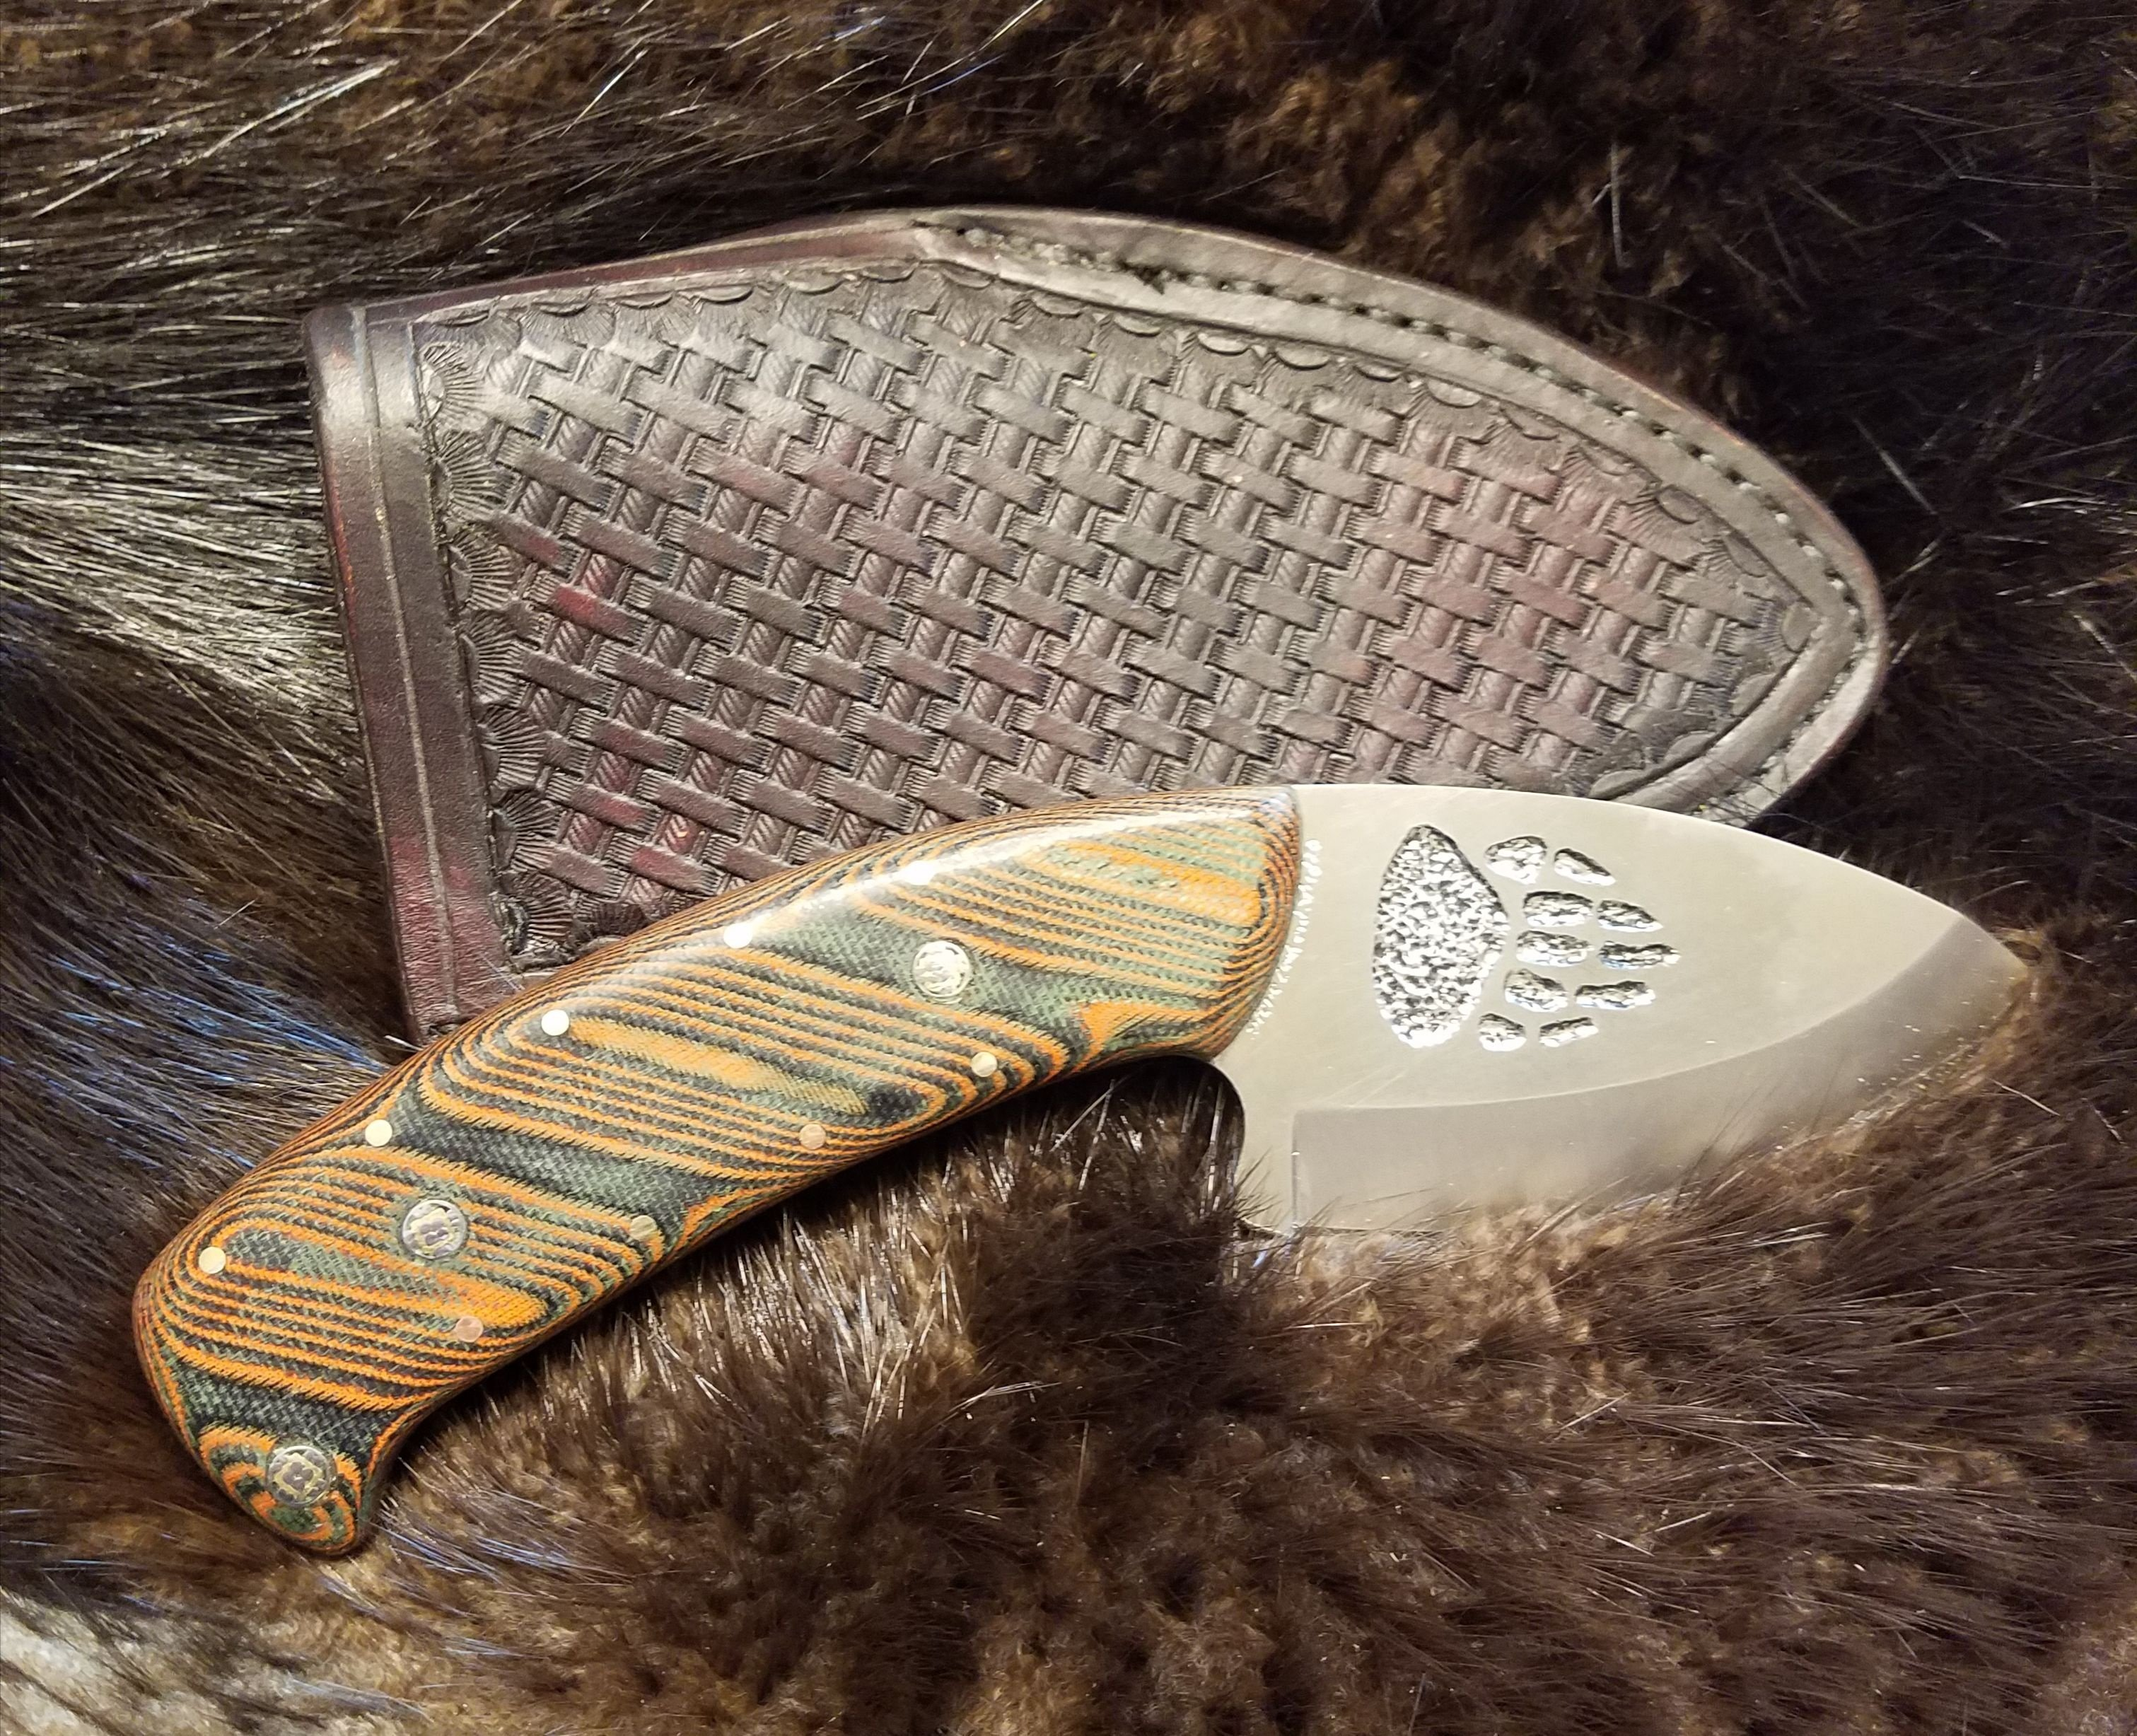 Grizzly Paw Engraved Skinner With Orange Dewcarta Handle, Hand Tooled, Hand Stitched Leather Sheath,   $180.00